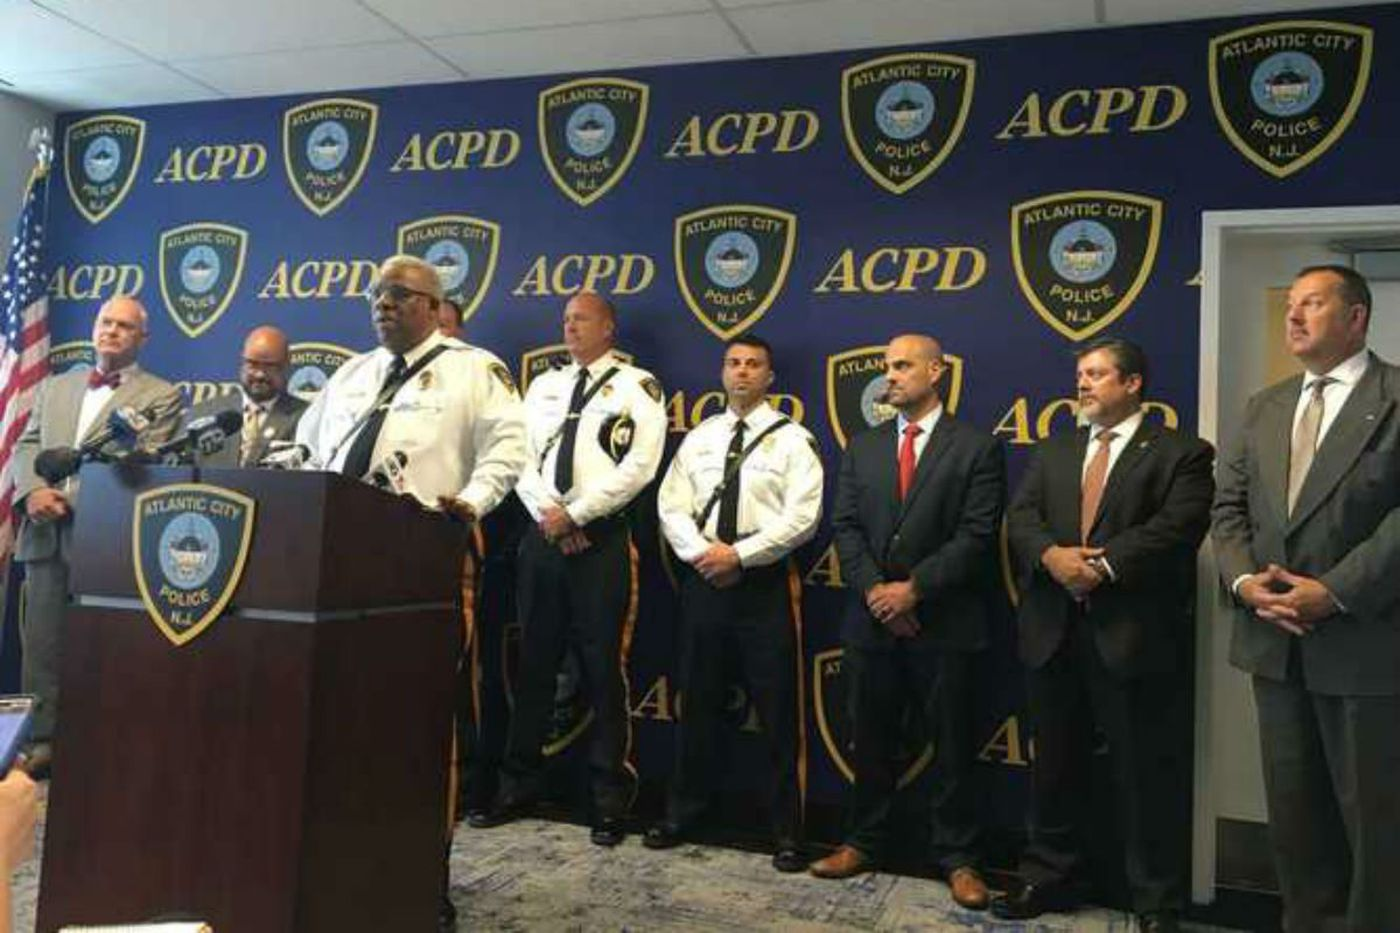 Terror links unlikely, but pair had enough firepower to blast Atlantic City Boardwalk, officials say